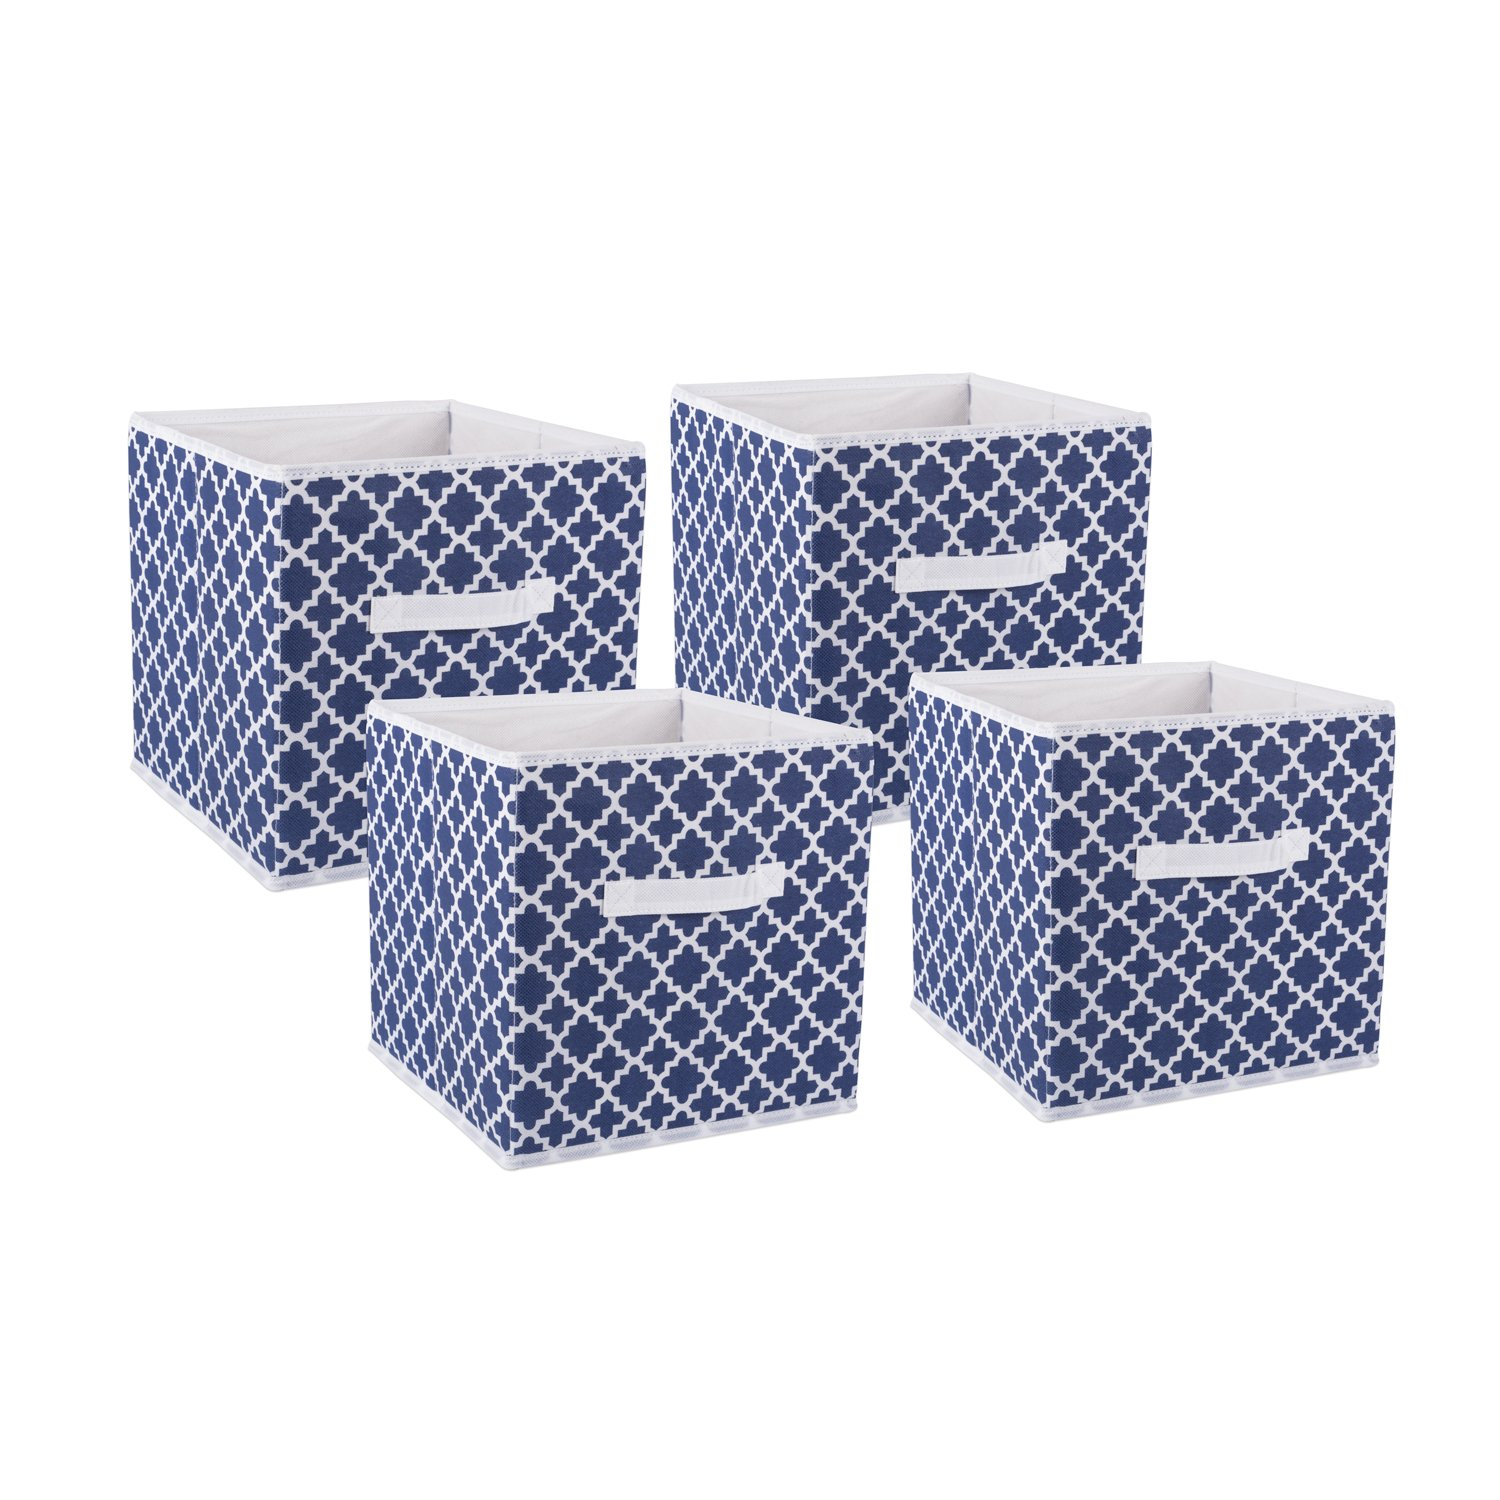 DII Fabric Storage Bins for Nursery, Offices, Home Organization, Containers are Made to Fit Standard Cube Organizers (11x11x11) Lattice Nautical Blue - Set of 4